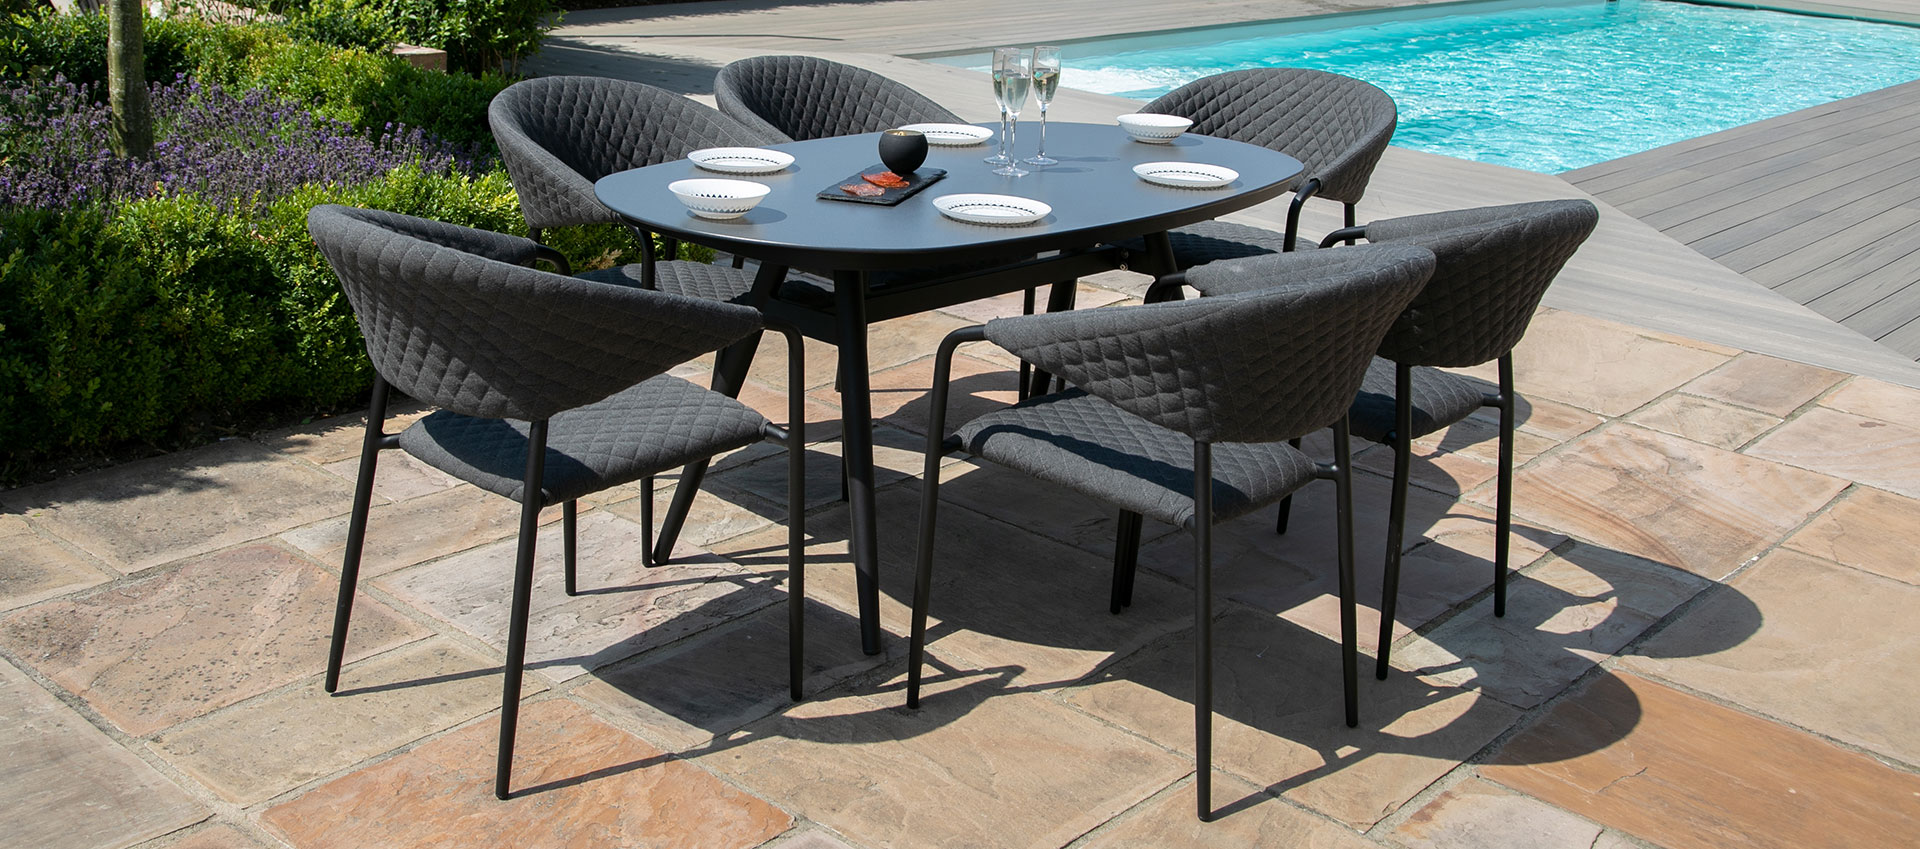 Maze Lounge - Outdoor Fabric Pebble 6 Seat Oval Dining Set - Charcoal